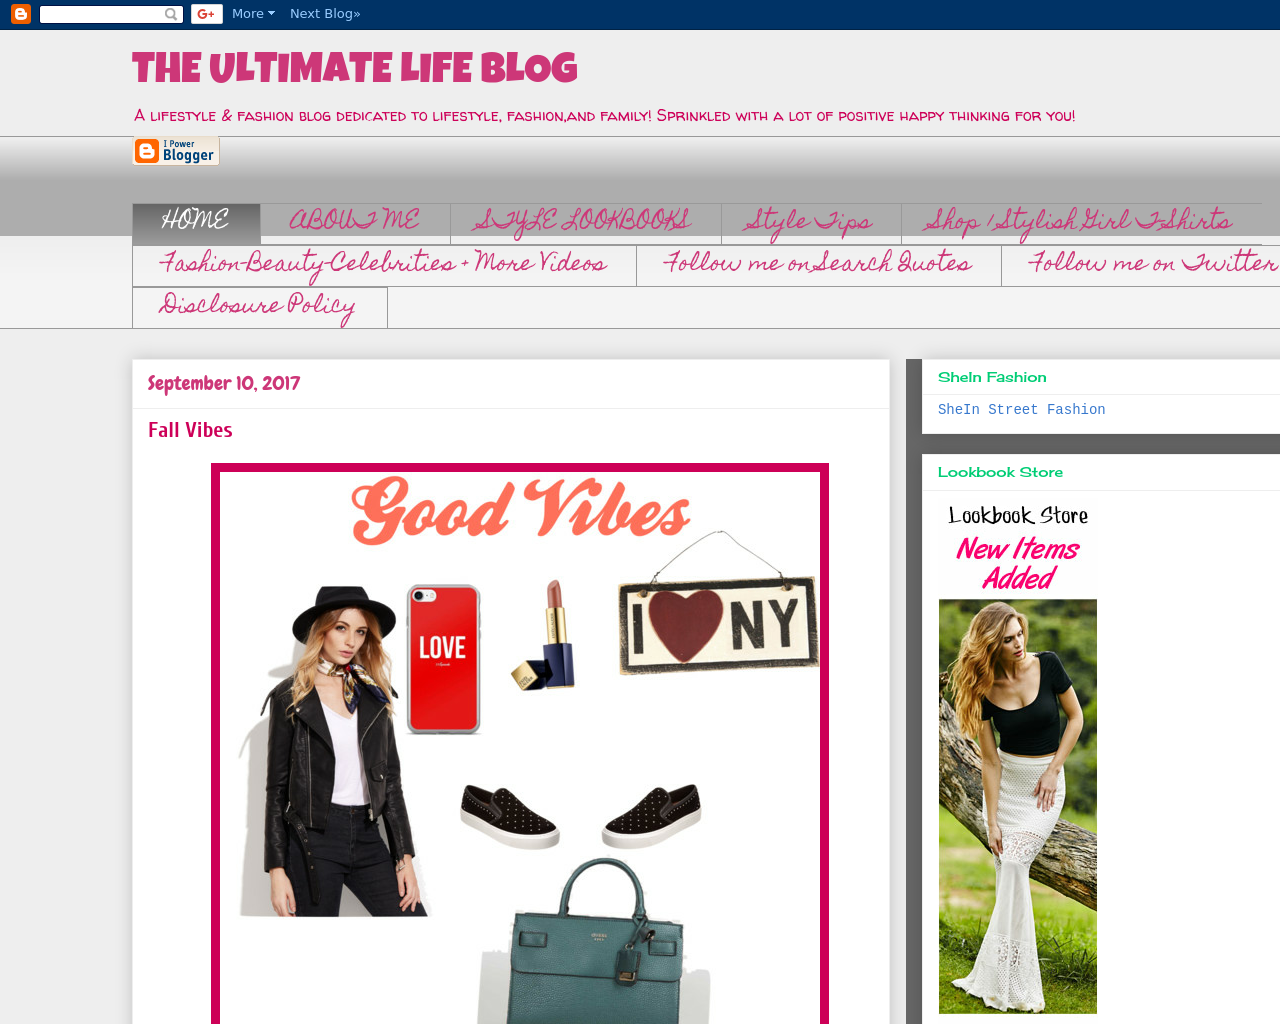 THE-ULTIMATE-LIFE-BLOG-Advertising-Reviews-Pricing